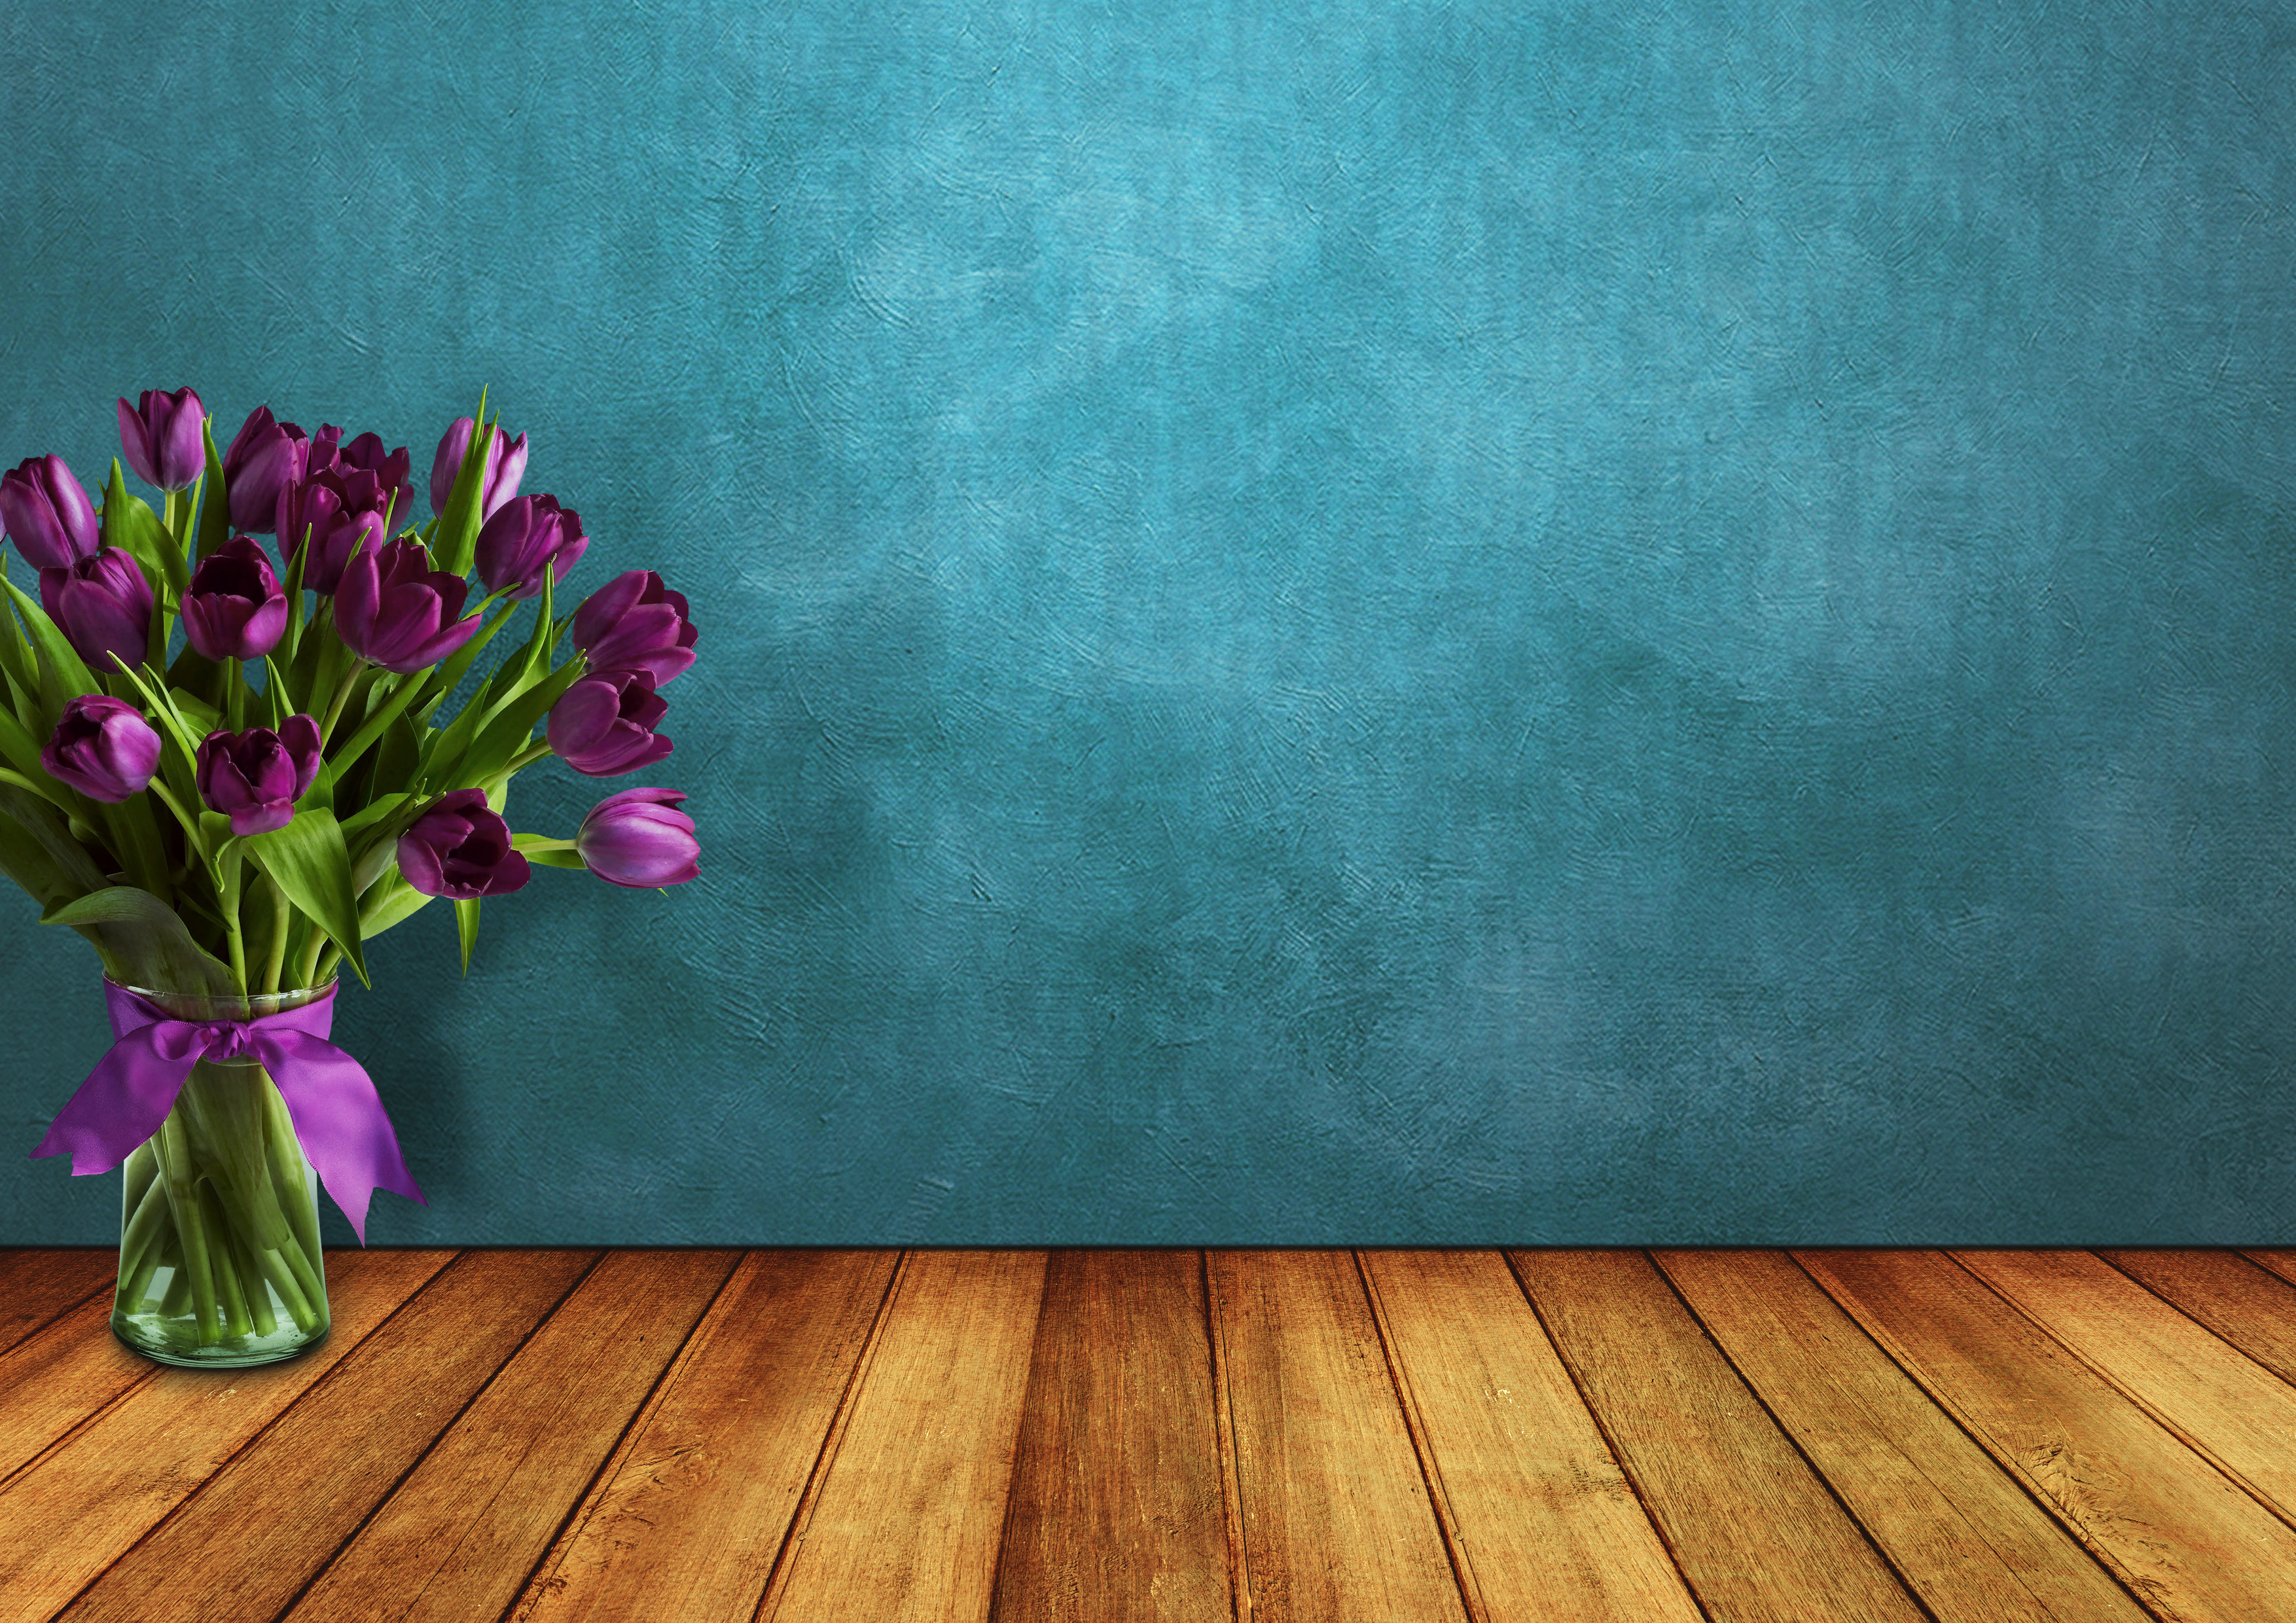 wood wall vase of free images tulips room wood vase wall ribbon vintage regarding free images tulips room wood vase wall ribbon vintage background blank text space template romantic purple decorative congratulate